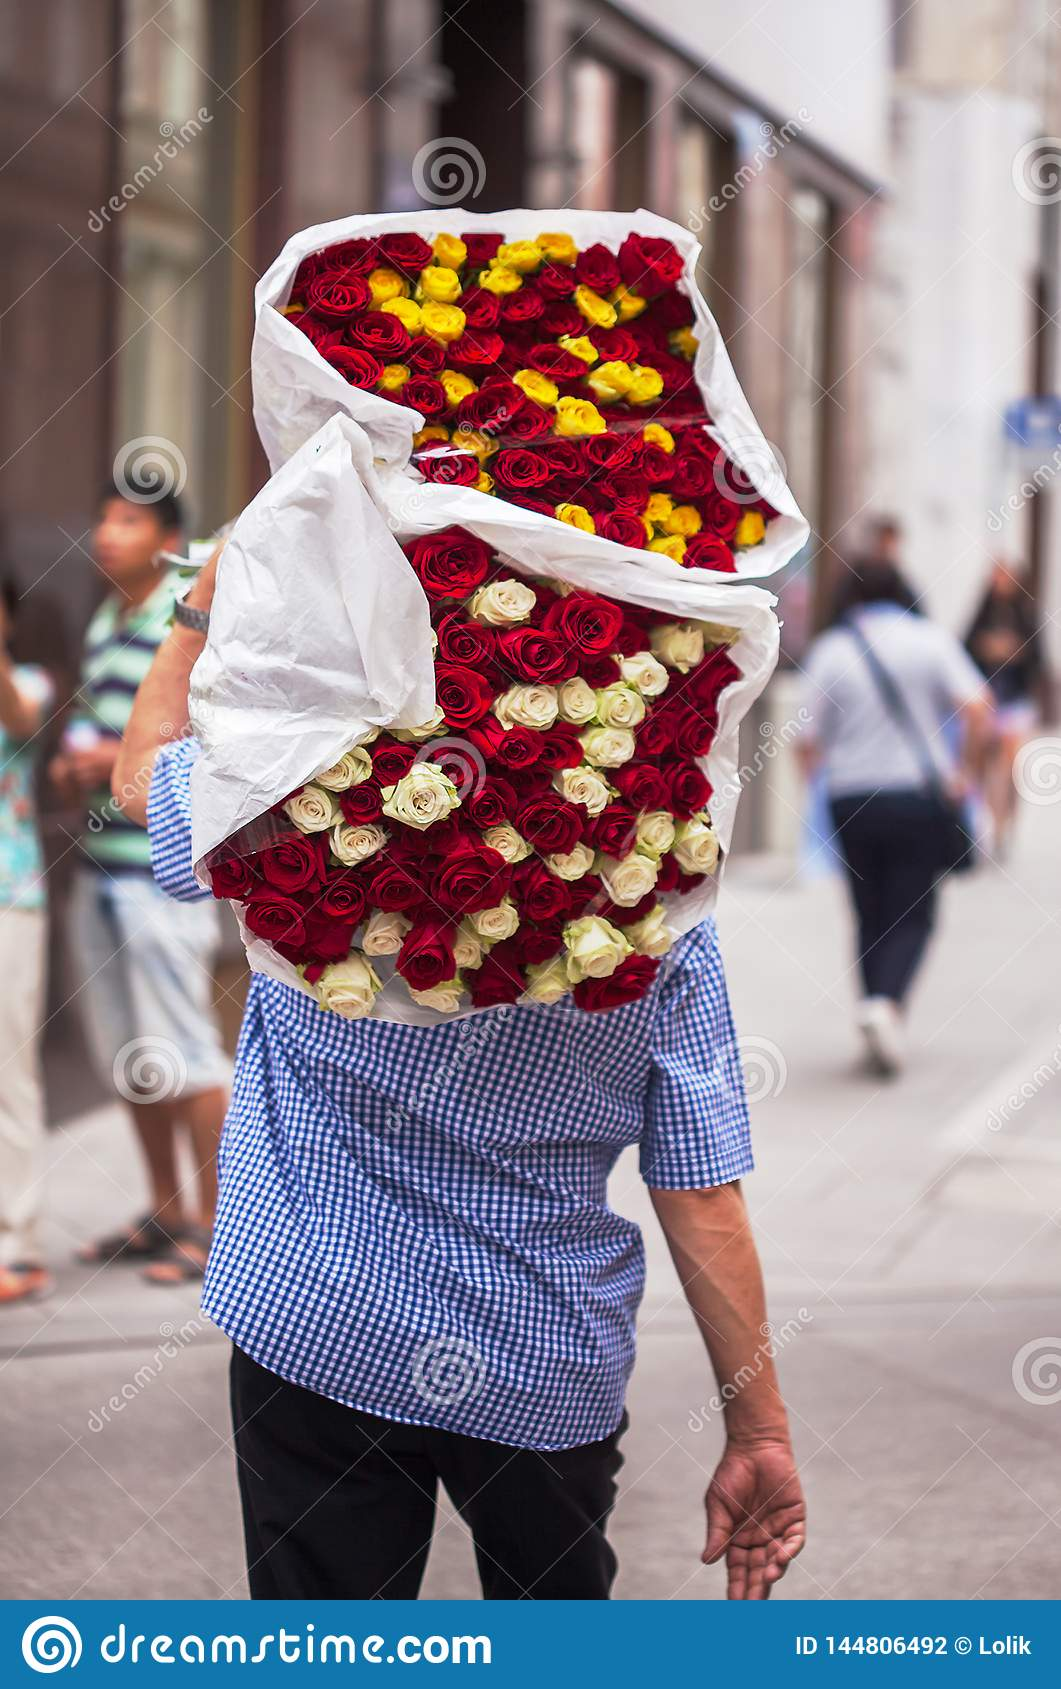 The guy carries a big bouquet with red, white and yellow roses